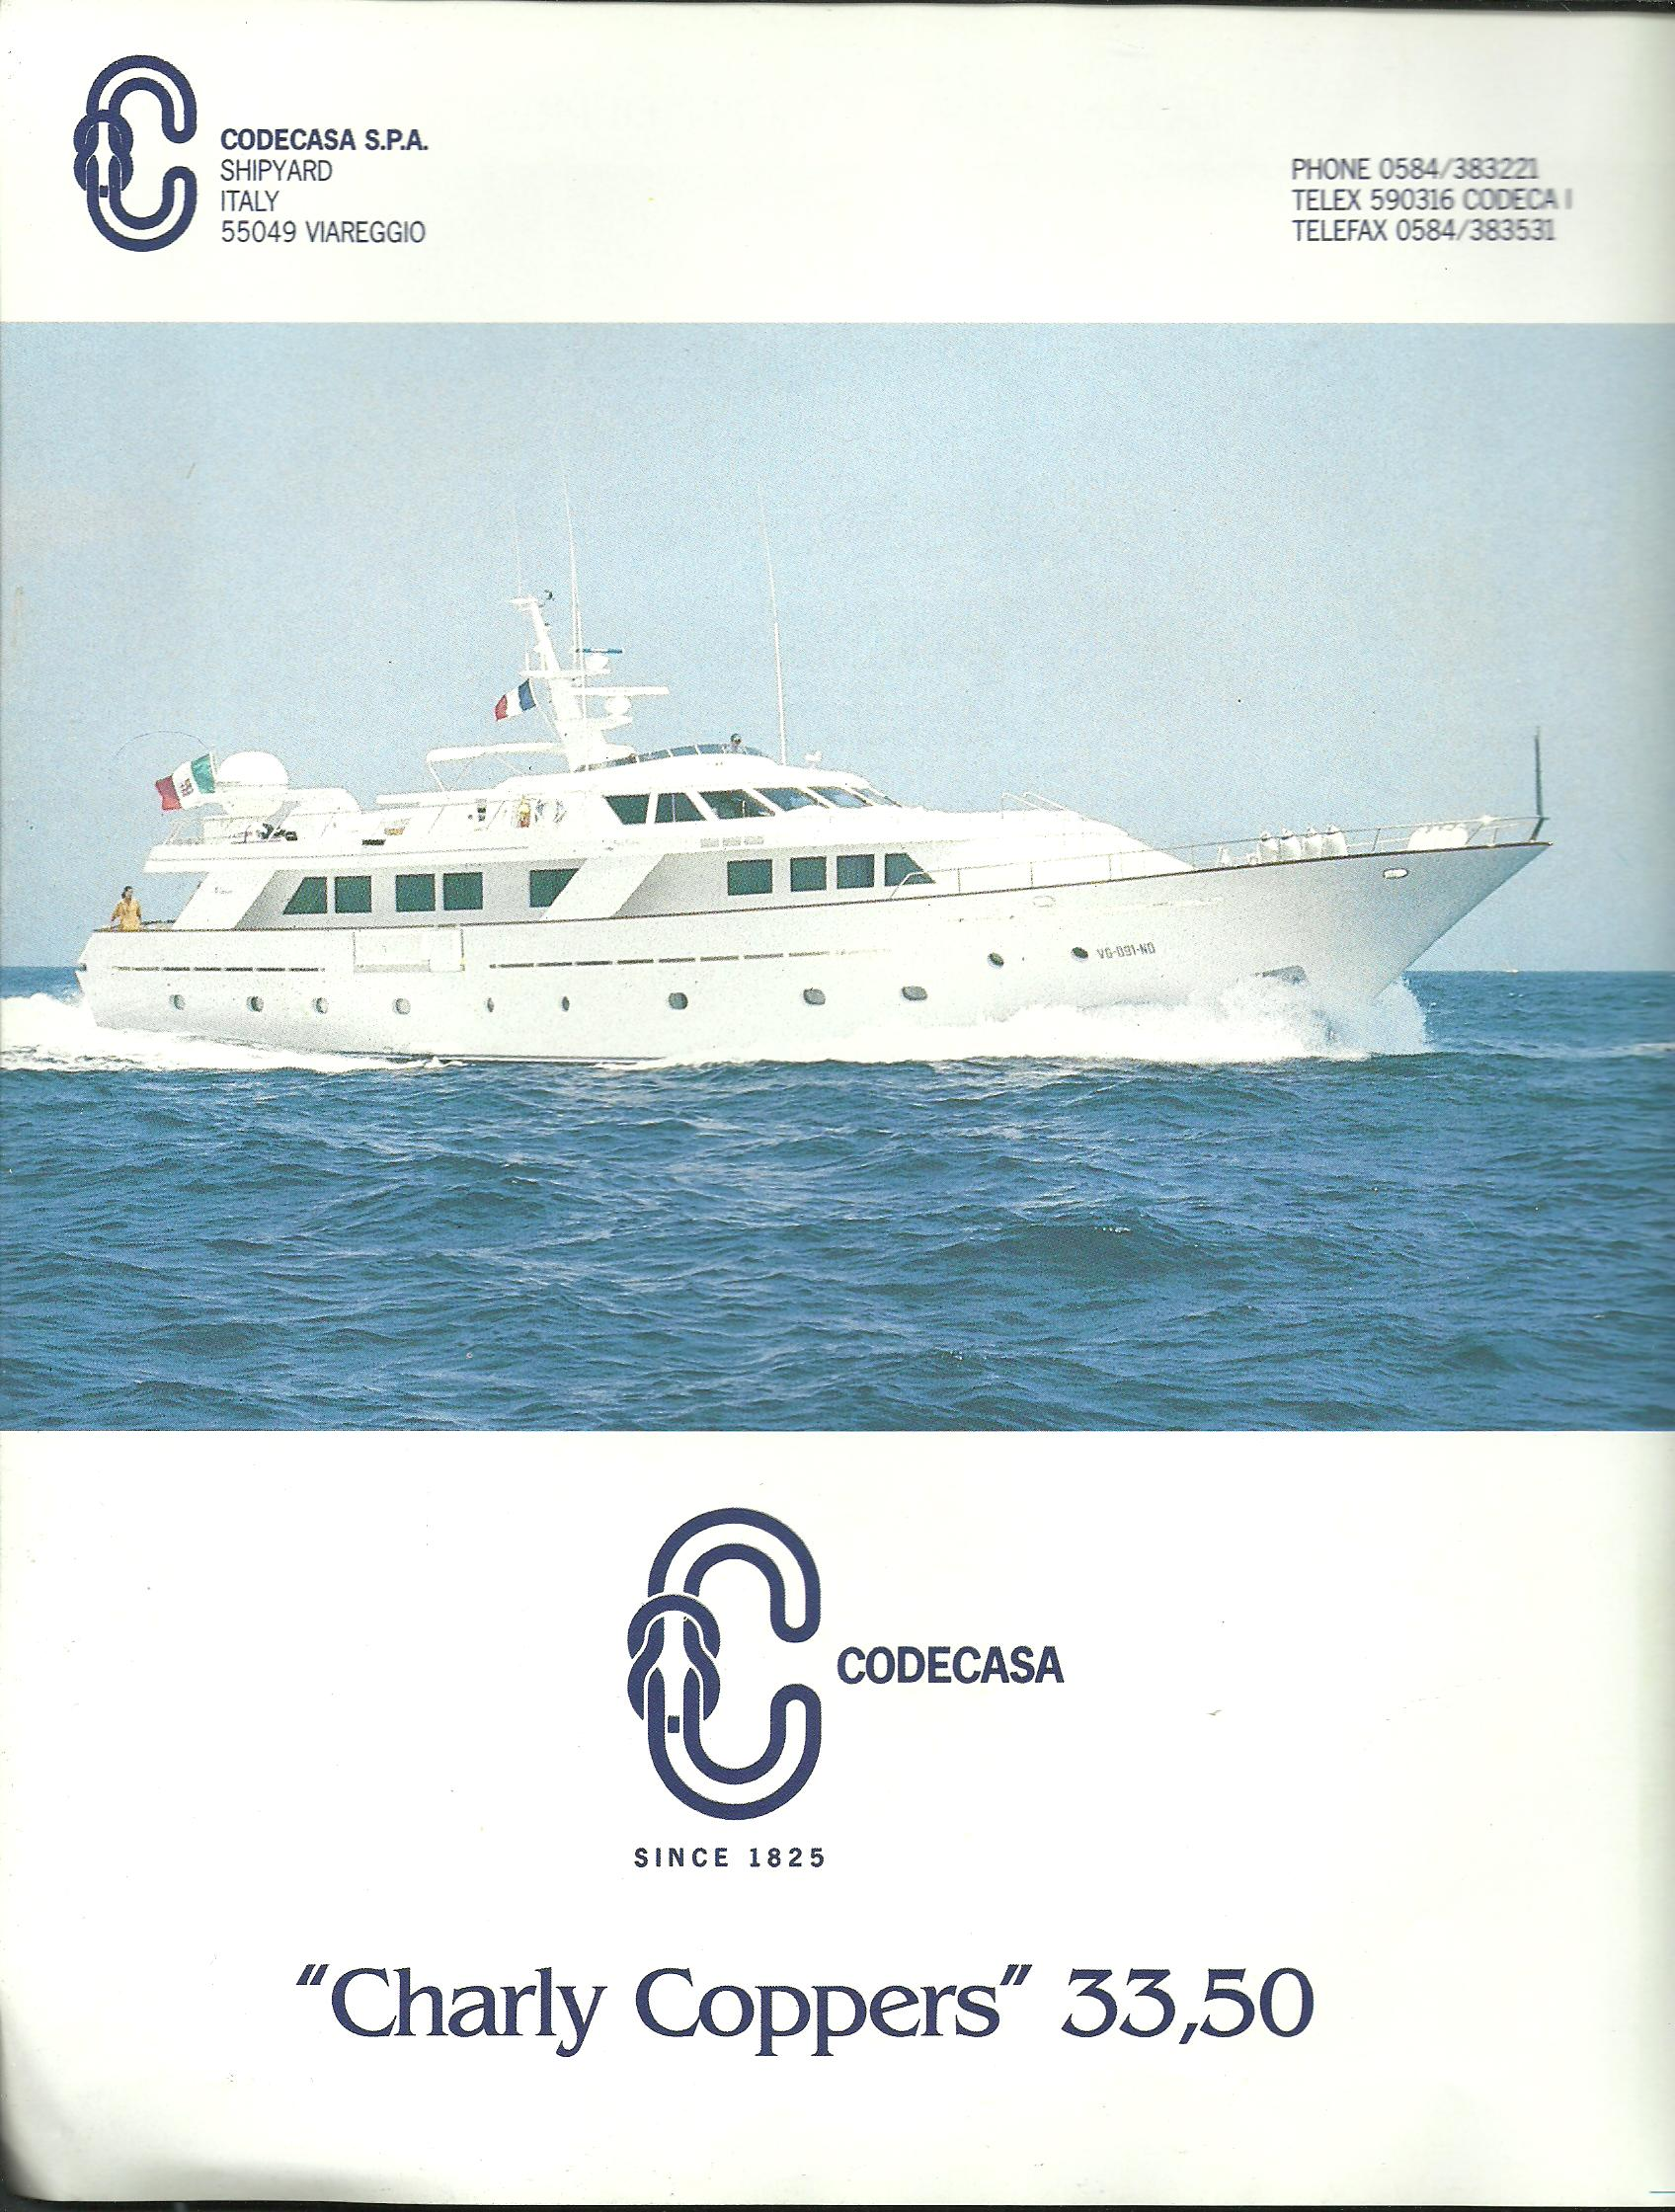 1989 10 ADV CODECASA CHARLY COPPERS Uomomare 134.jpg